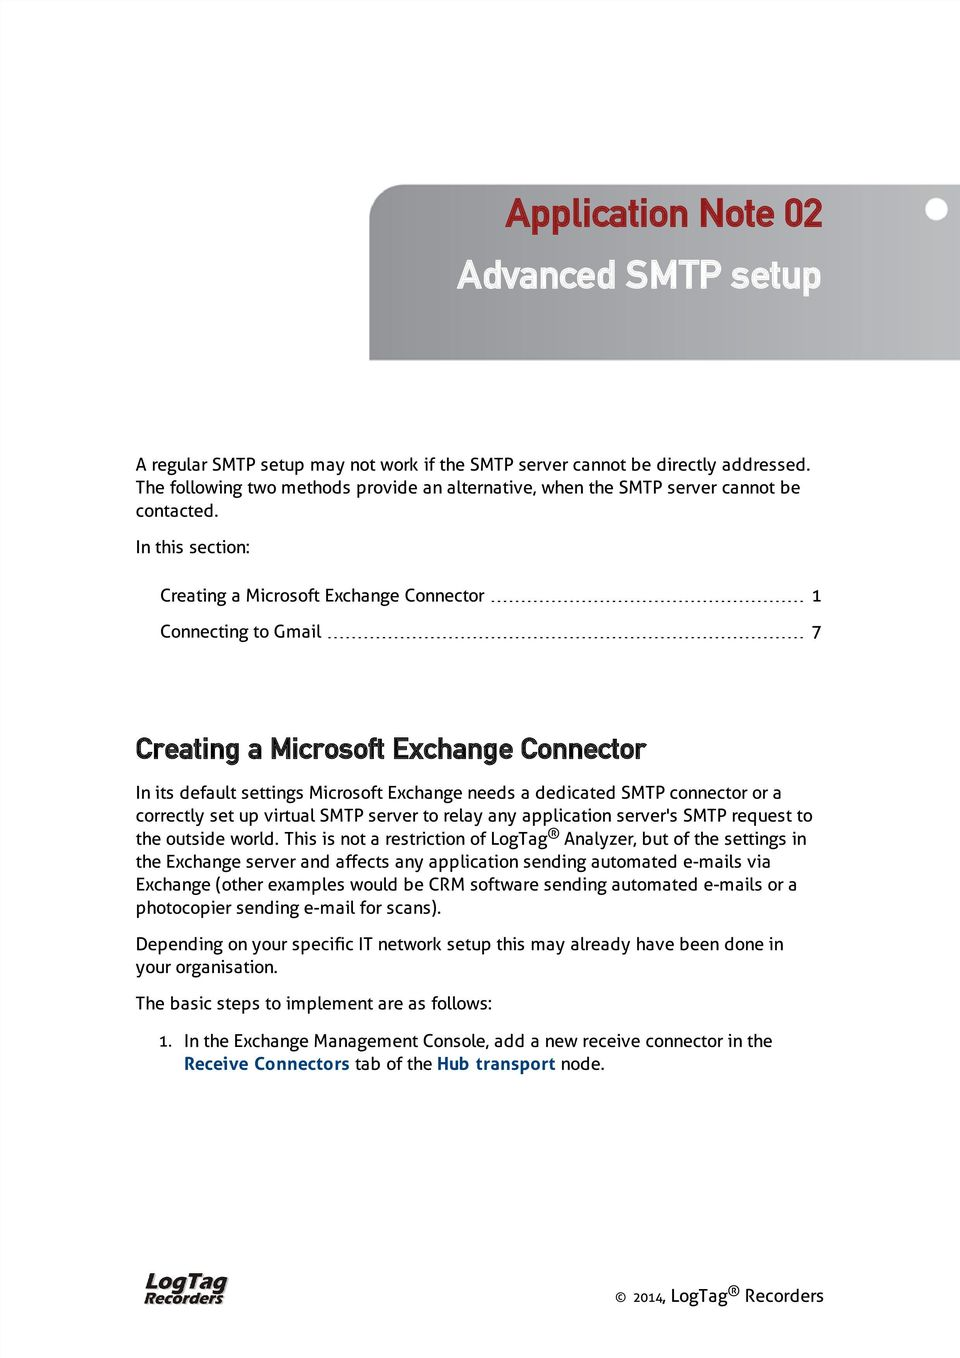 In this section: Creating a Microsoft Exchange Connector 1 Connecting to Gmail 7 Creating a Microsoft Exchange Connector In its default settings Microsoft Exchange needs a dedicated SMTP connector or